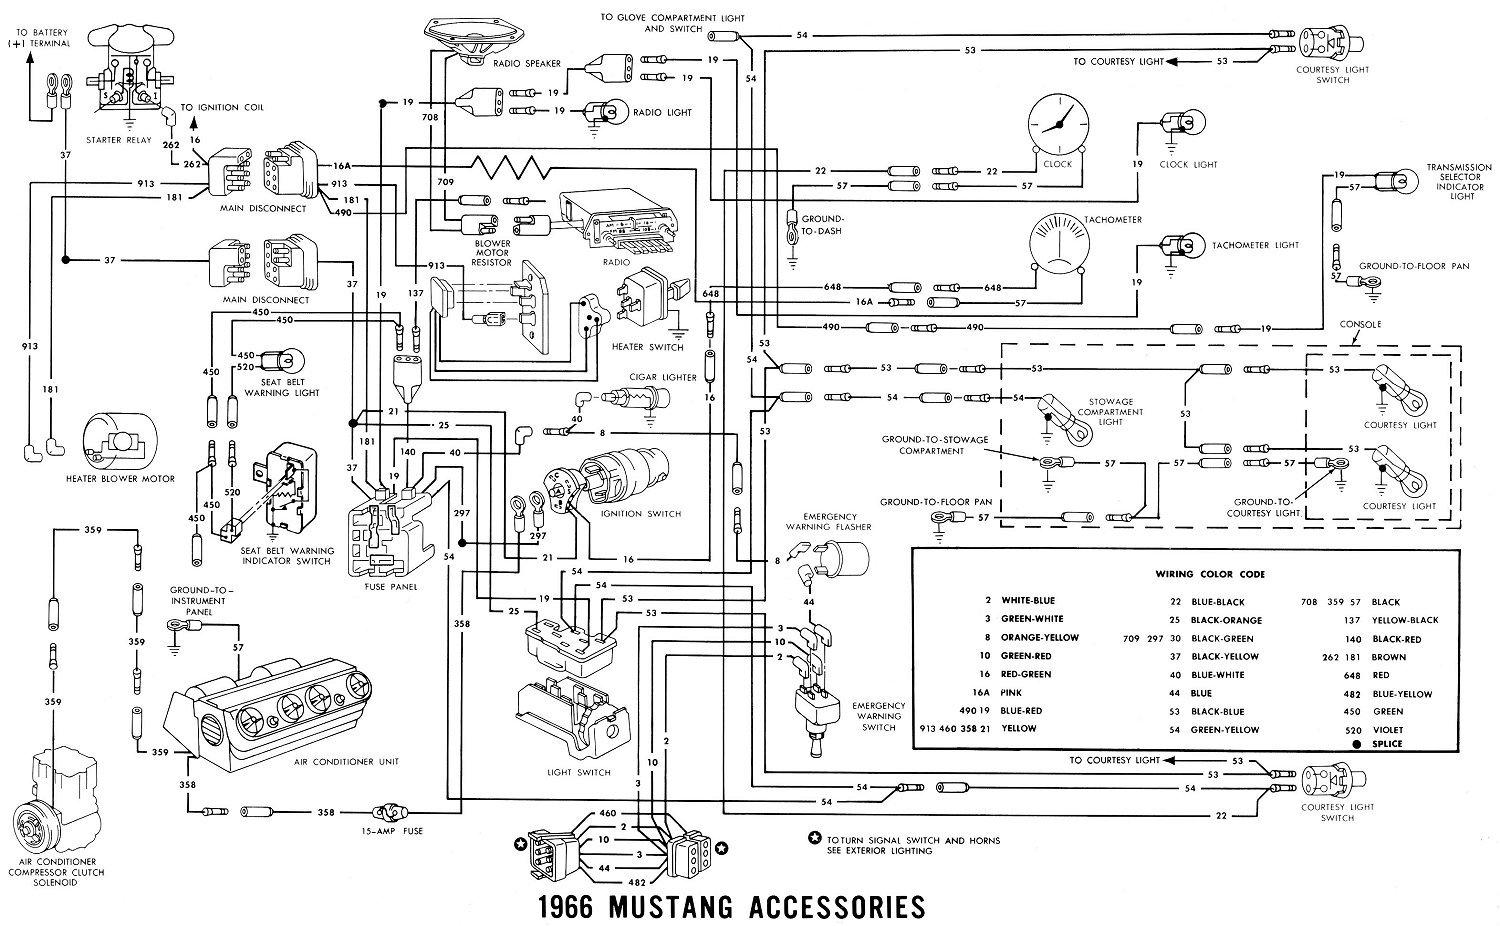 vintage mustang wiring diagrams rh midlife66 com Wiring Diagram for 1993 Mustang GT 1993 Mustang Wiring Diagram